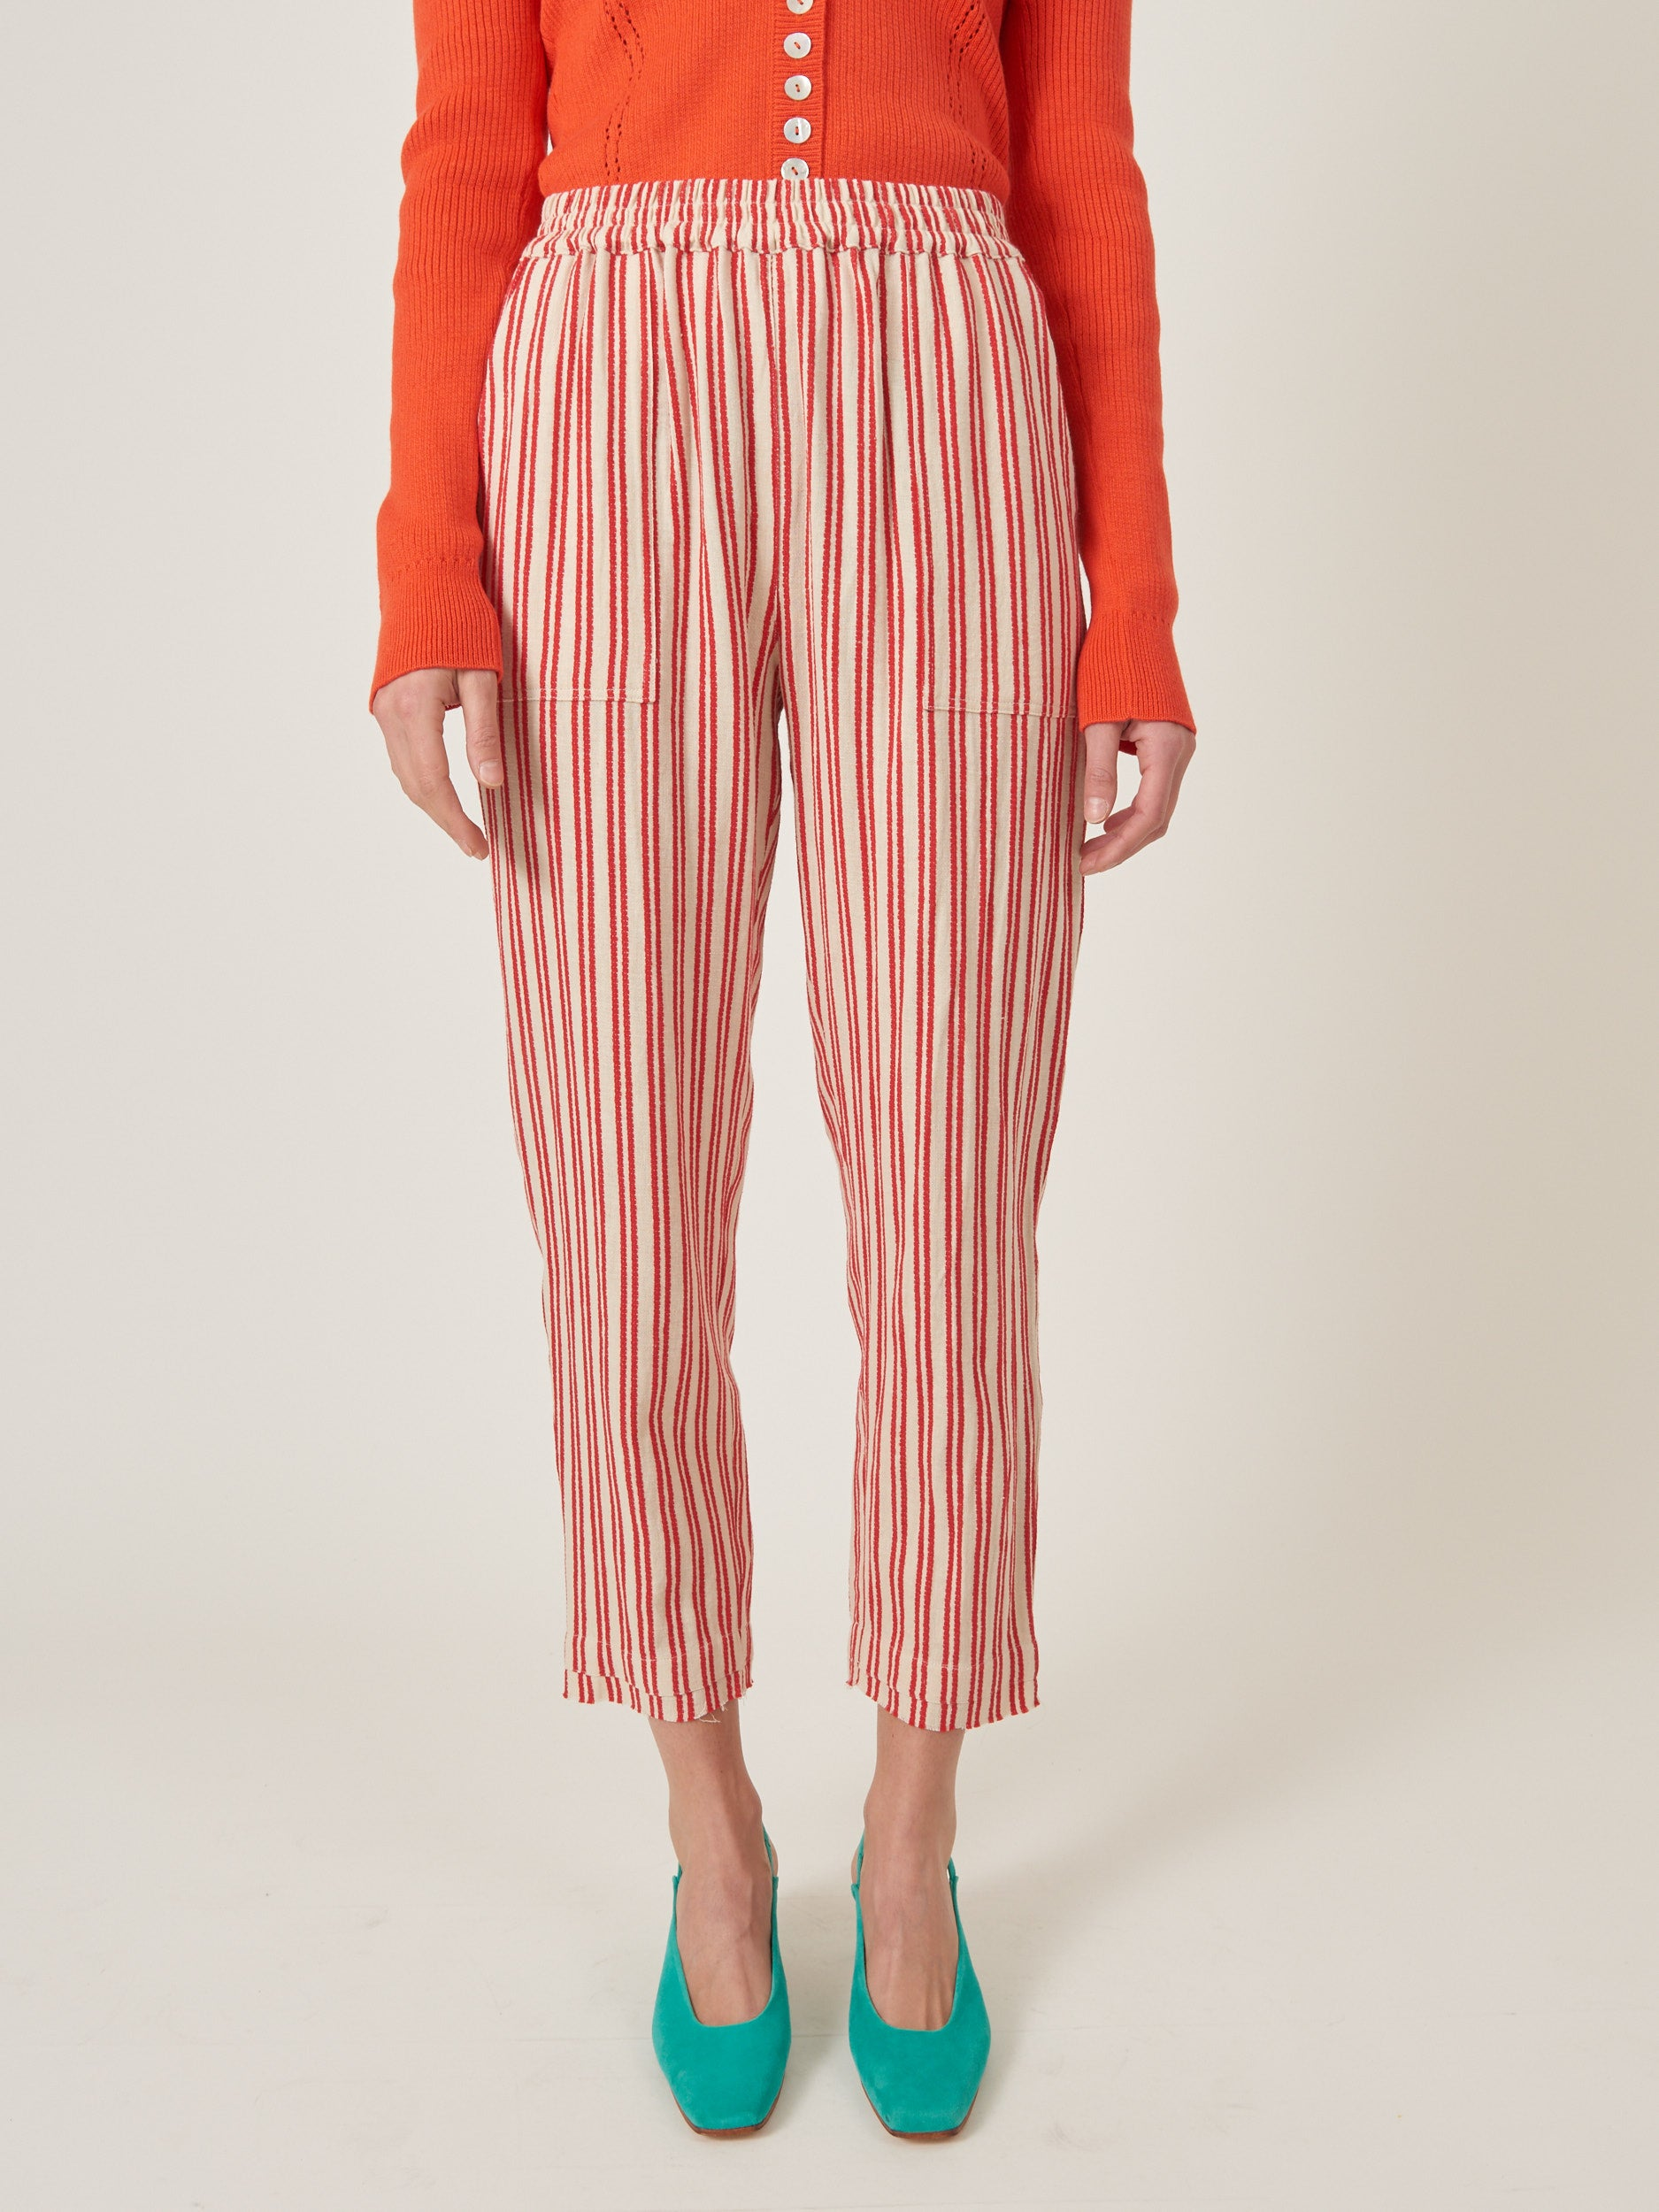 Natural/Red Striped Pull On Pant